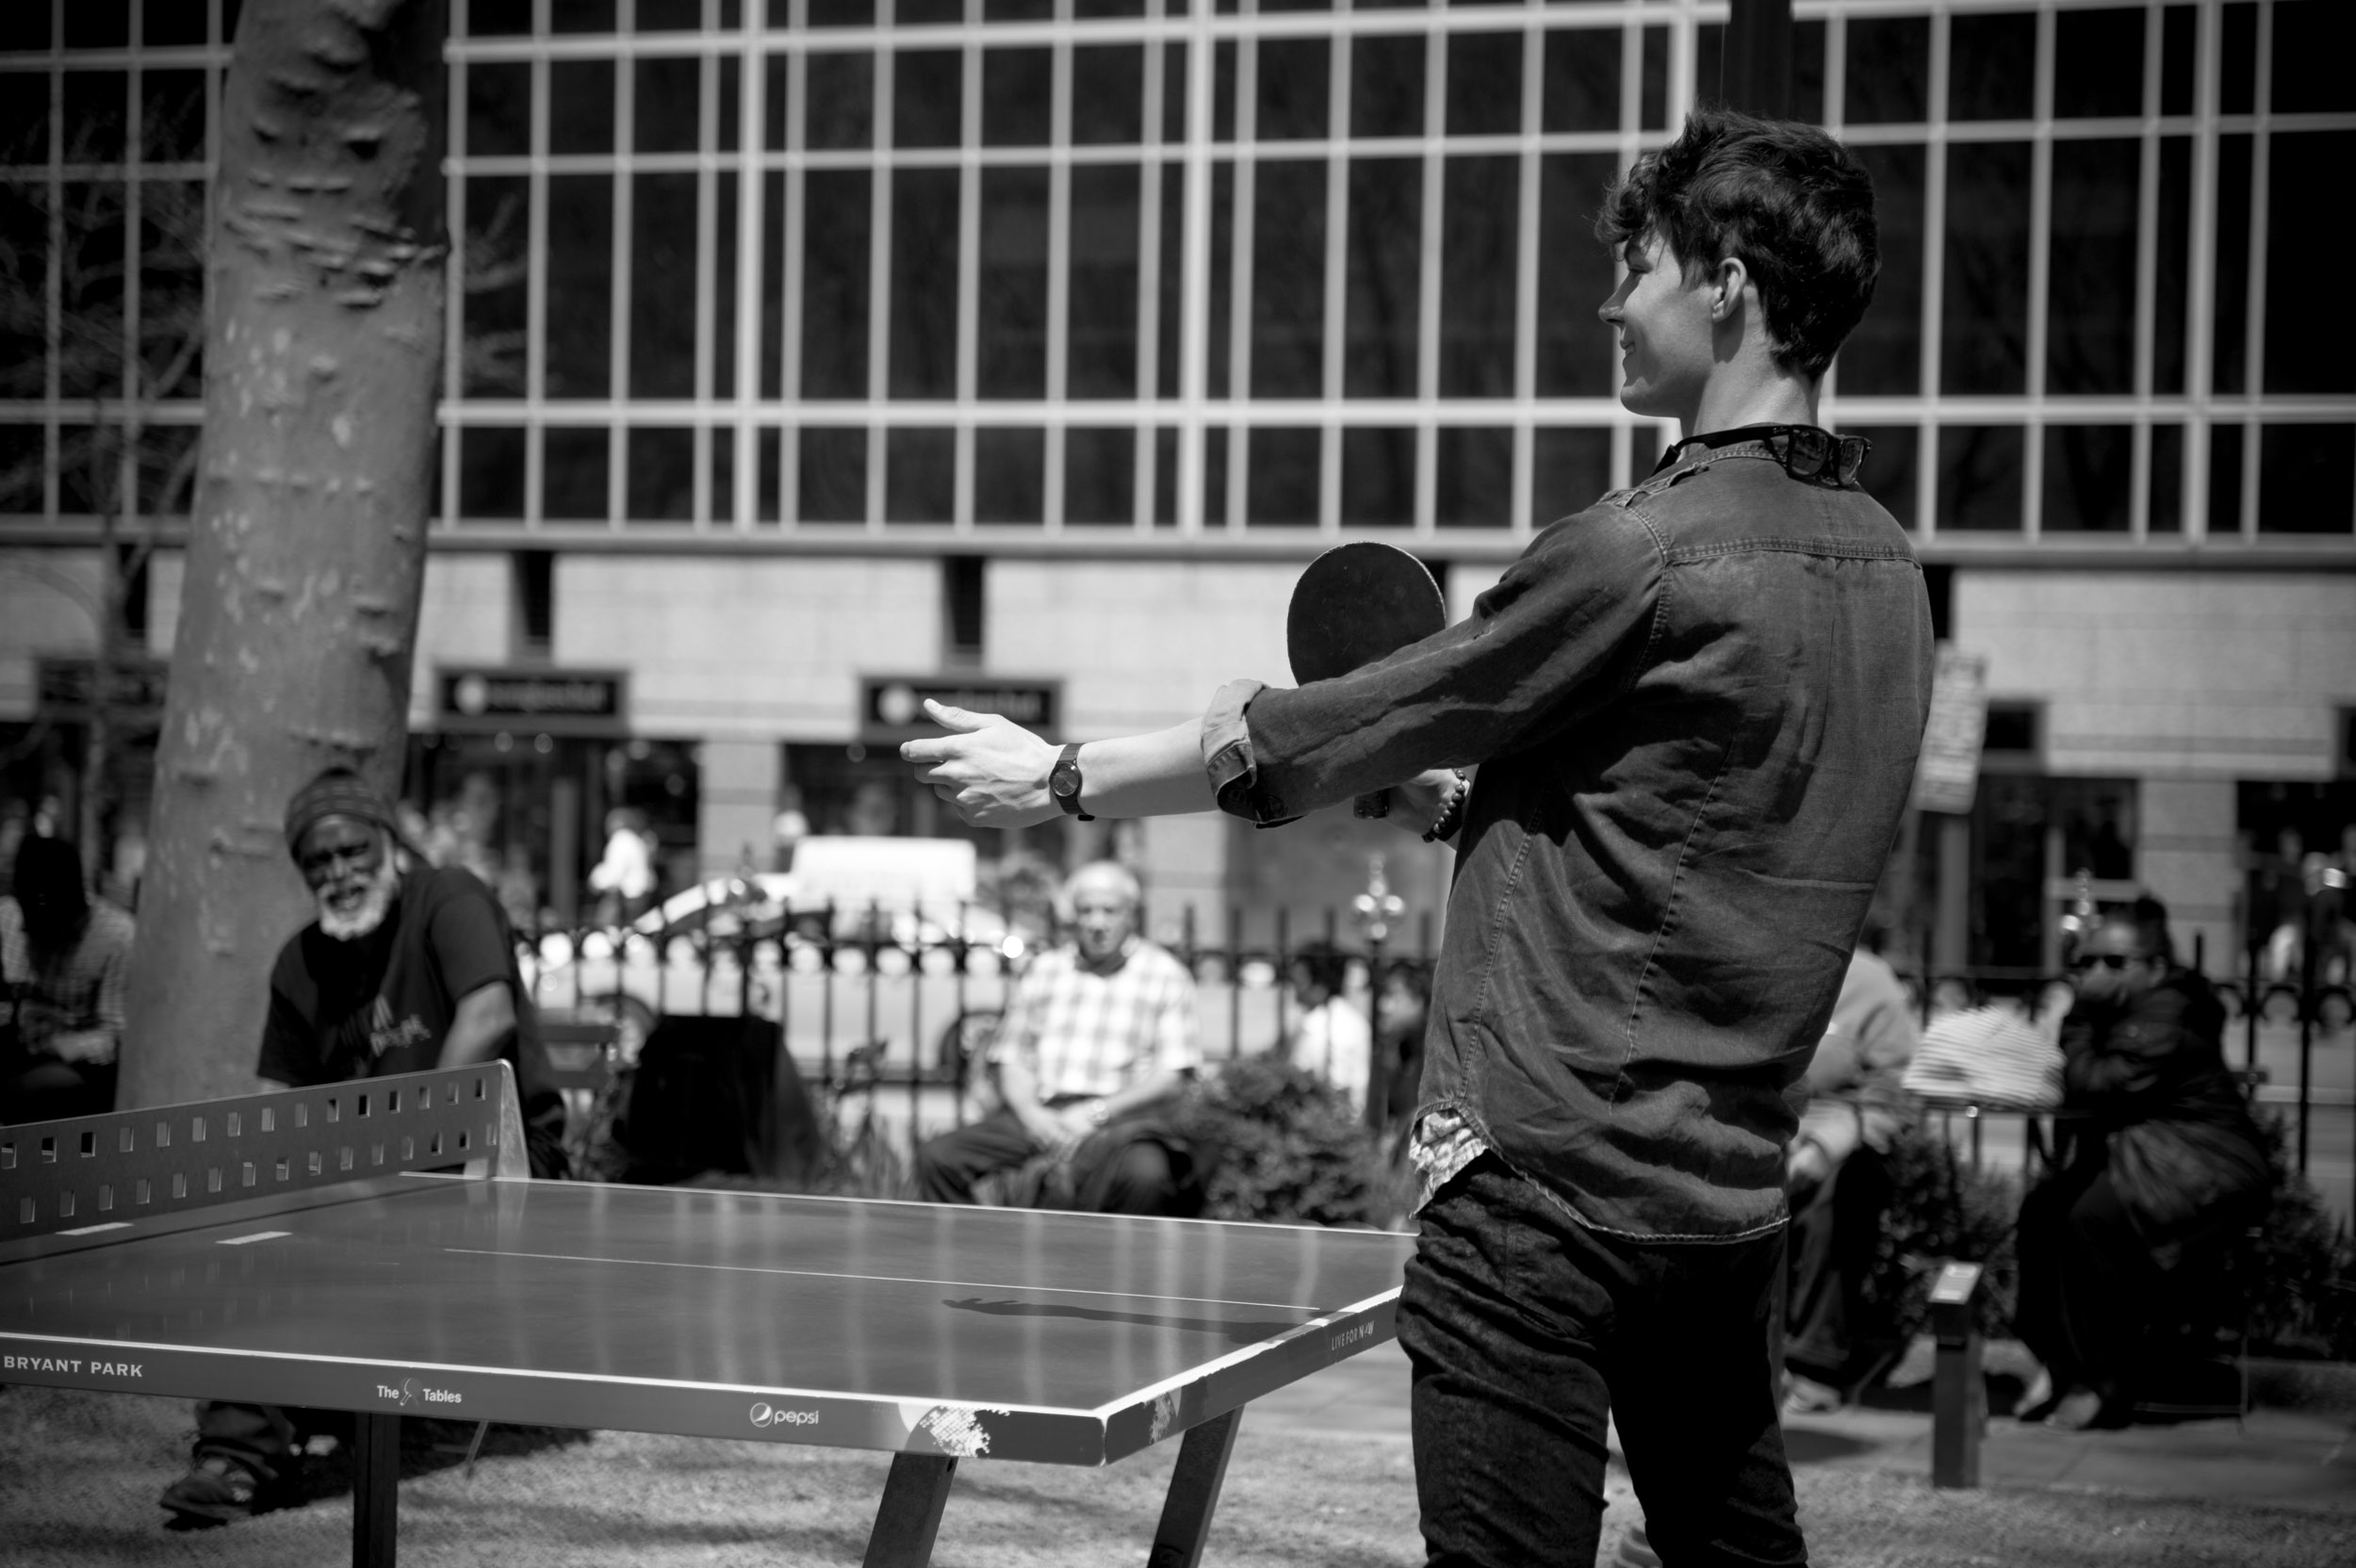 pam_korman_photography-ping-pong_diplomacy-bryant_park_new_york_city-07.jpg